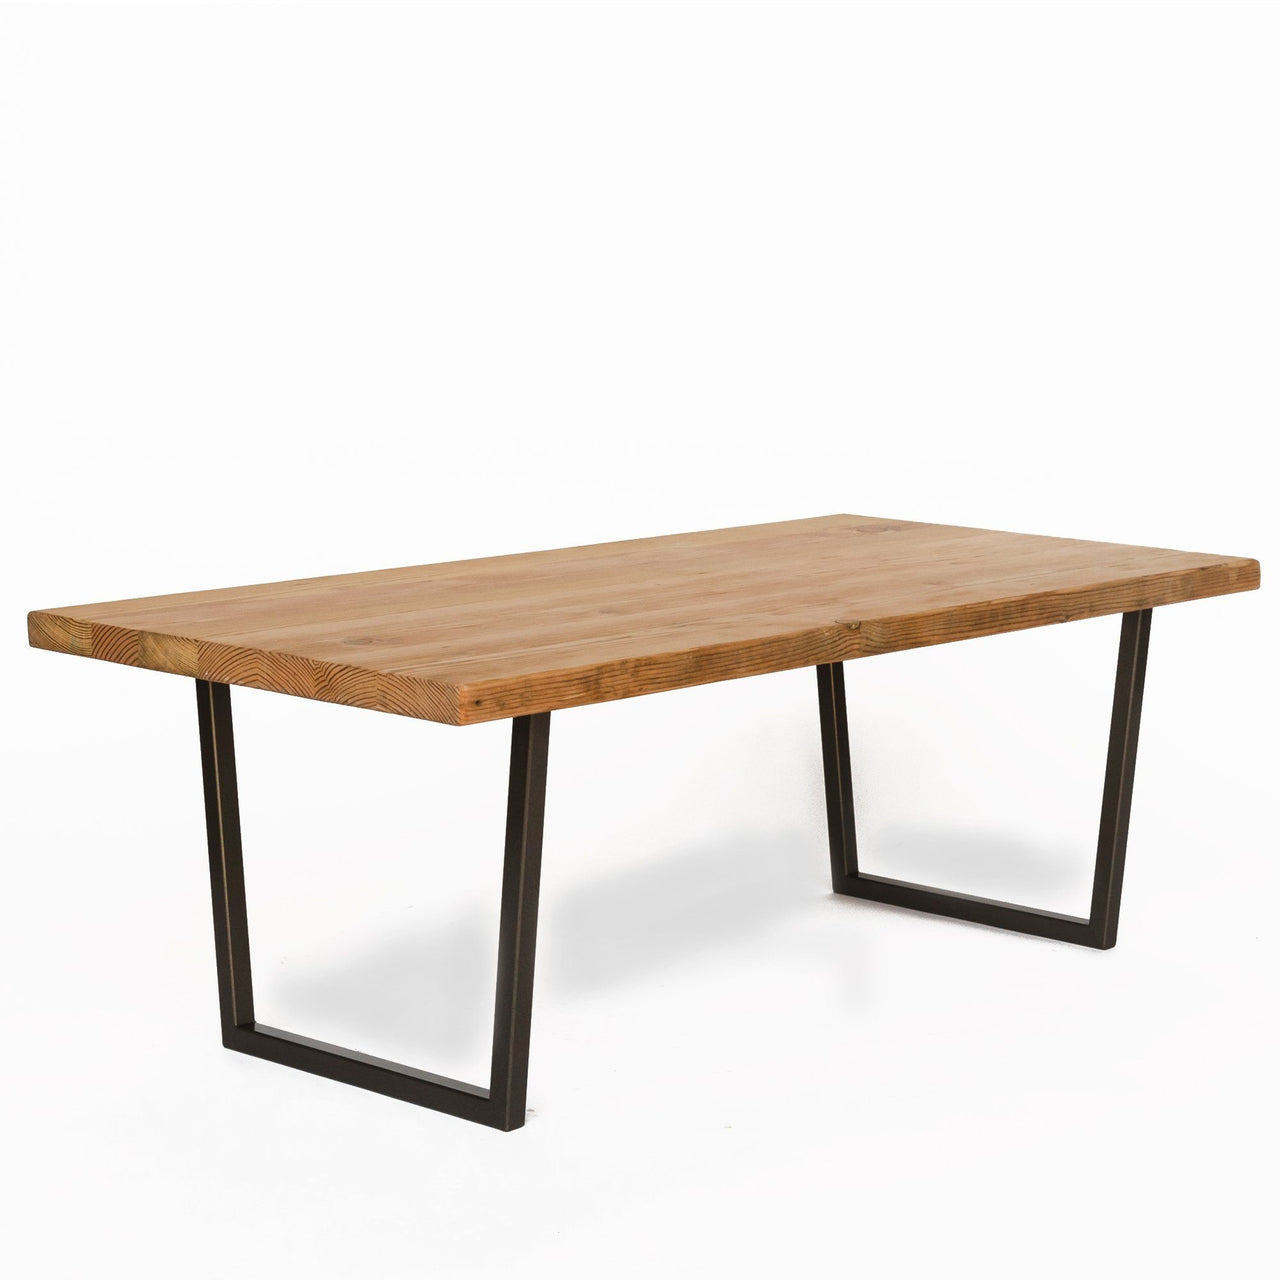 Modern Wood Coffee Table: Brooklyn Modern Rustic Reclaimed Wood Coffee Table